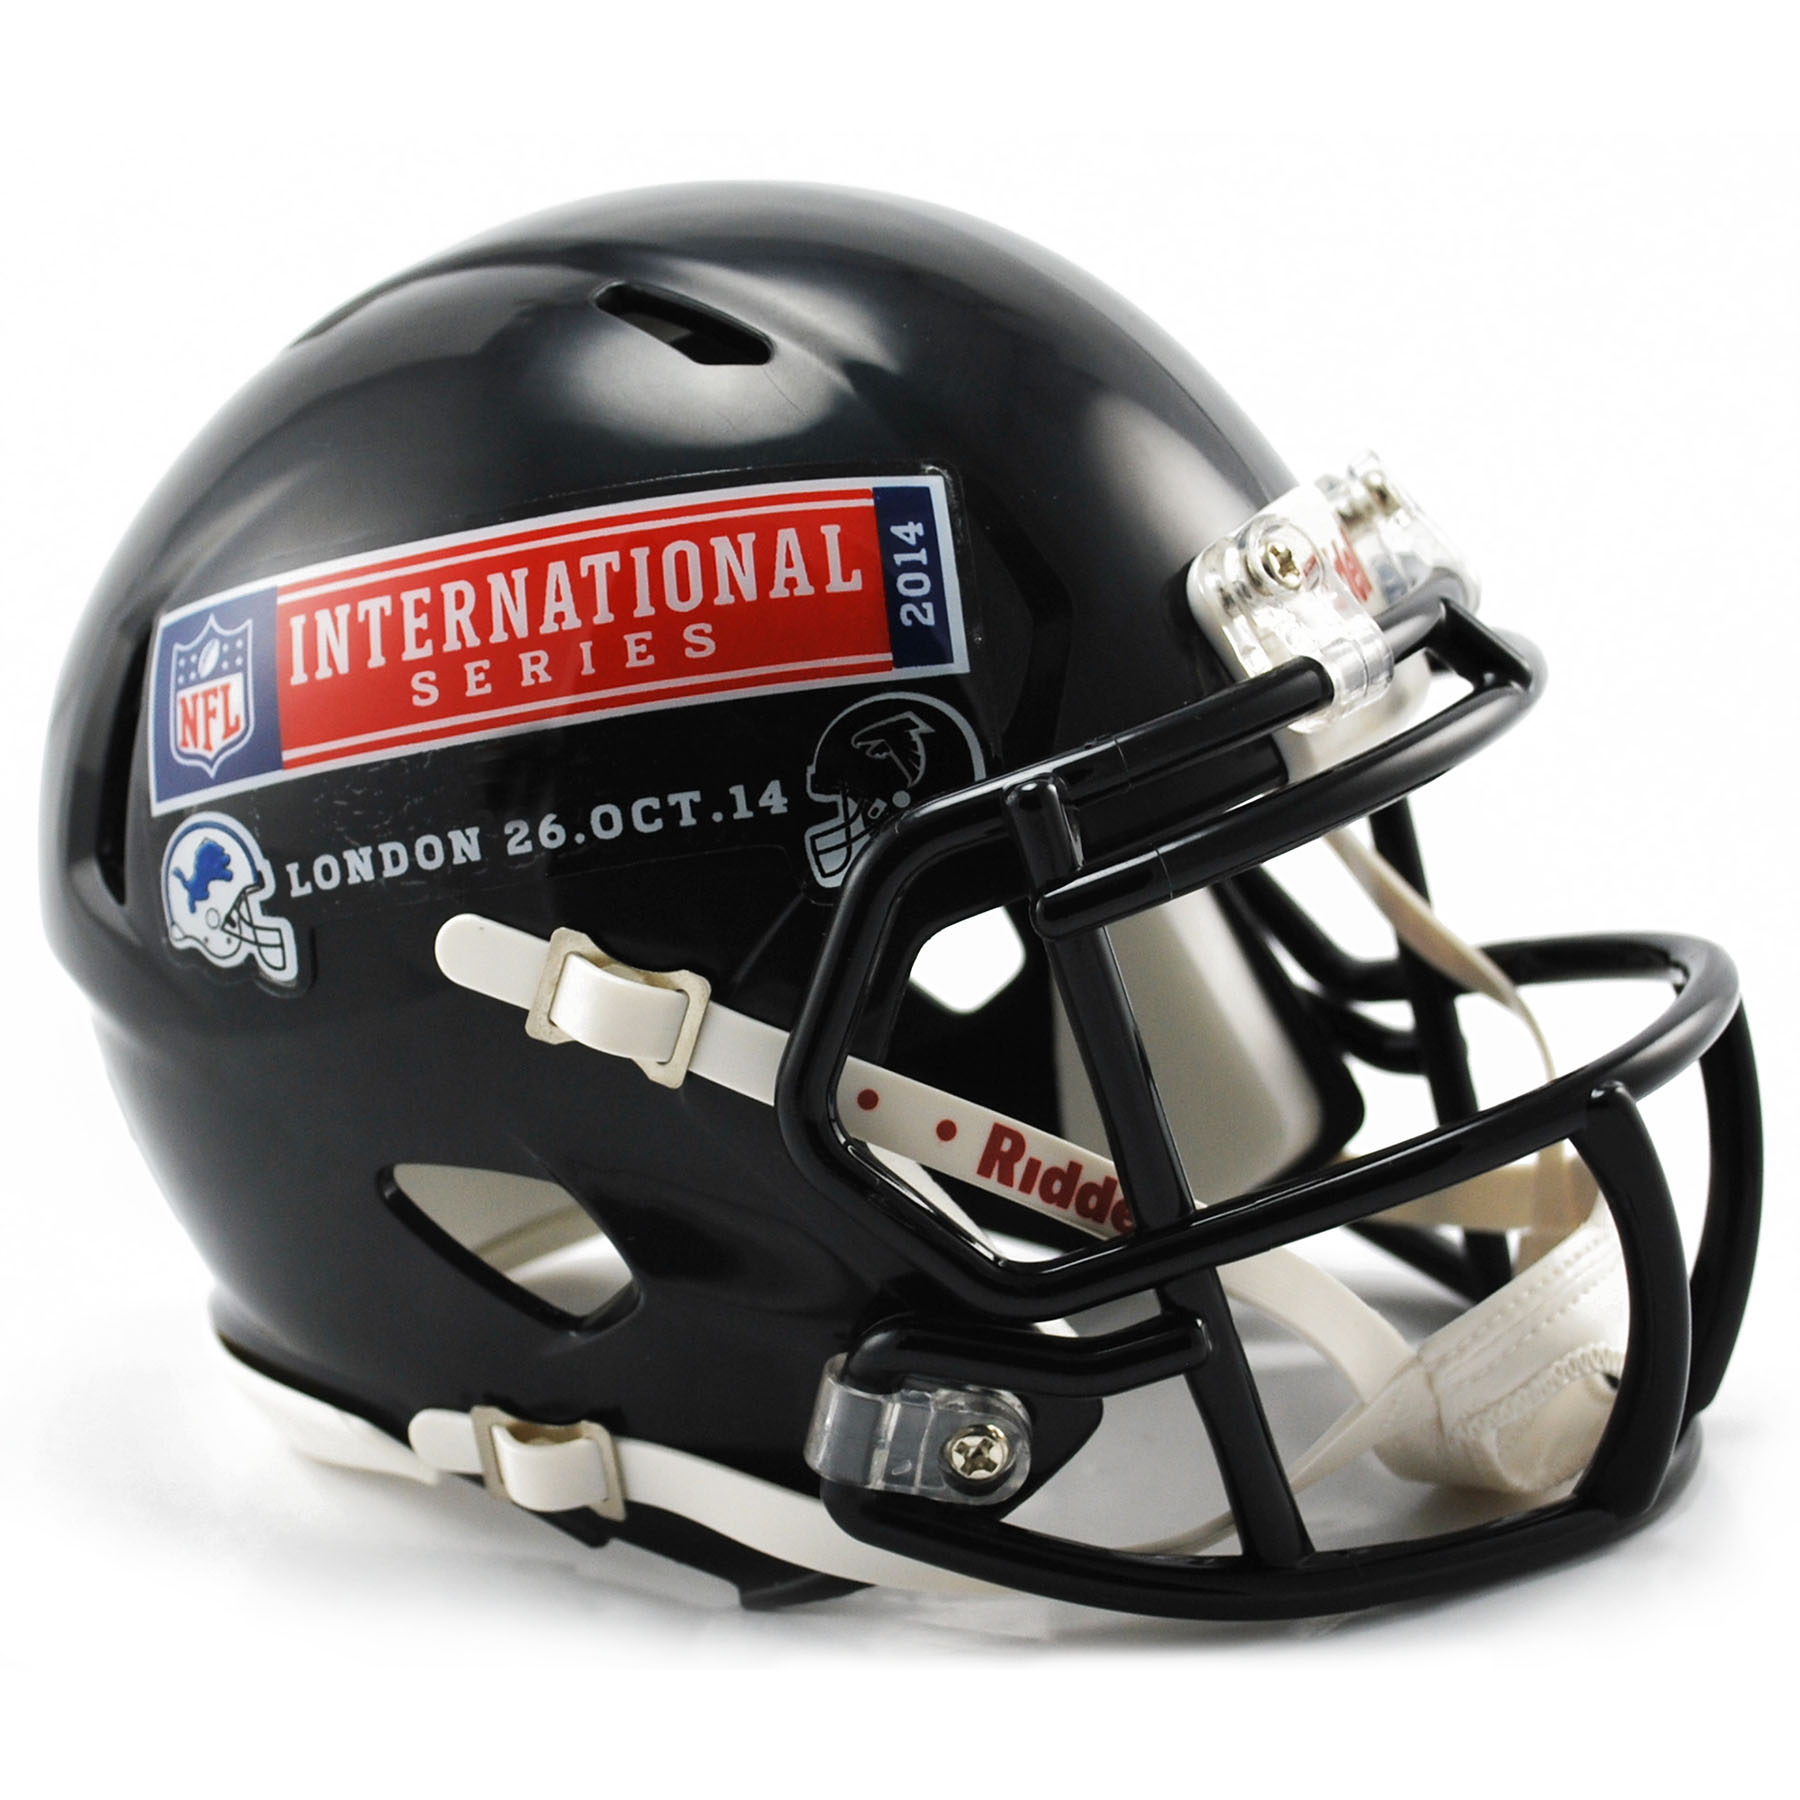 NFL Lions Vs Falcons International Series Game 10 VSR4 Mini Helmet